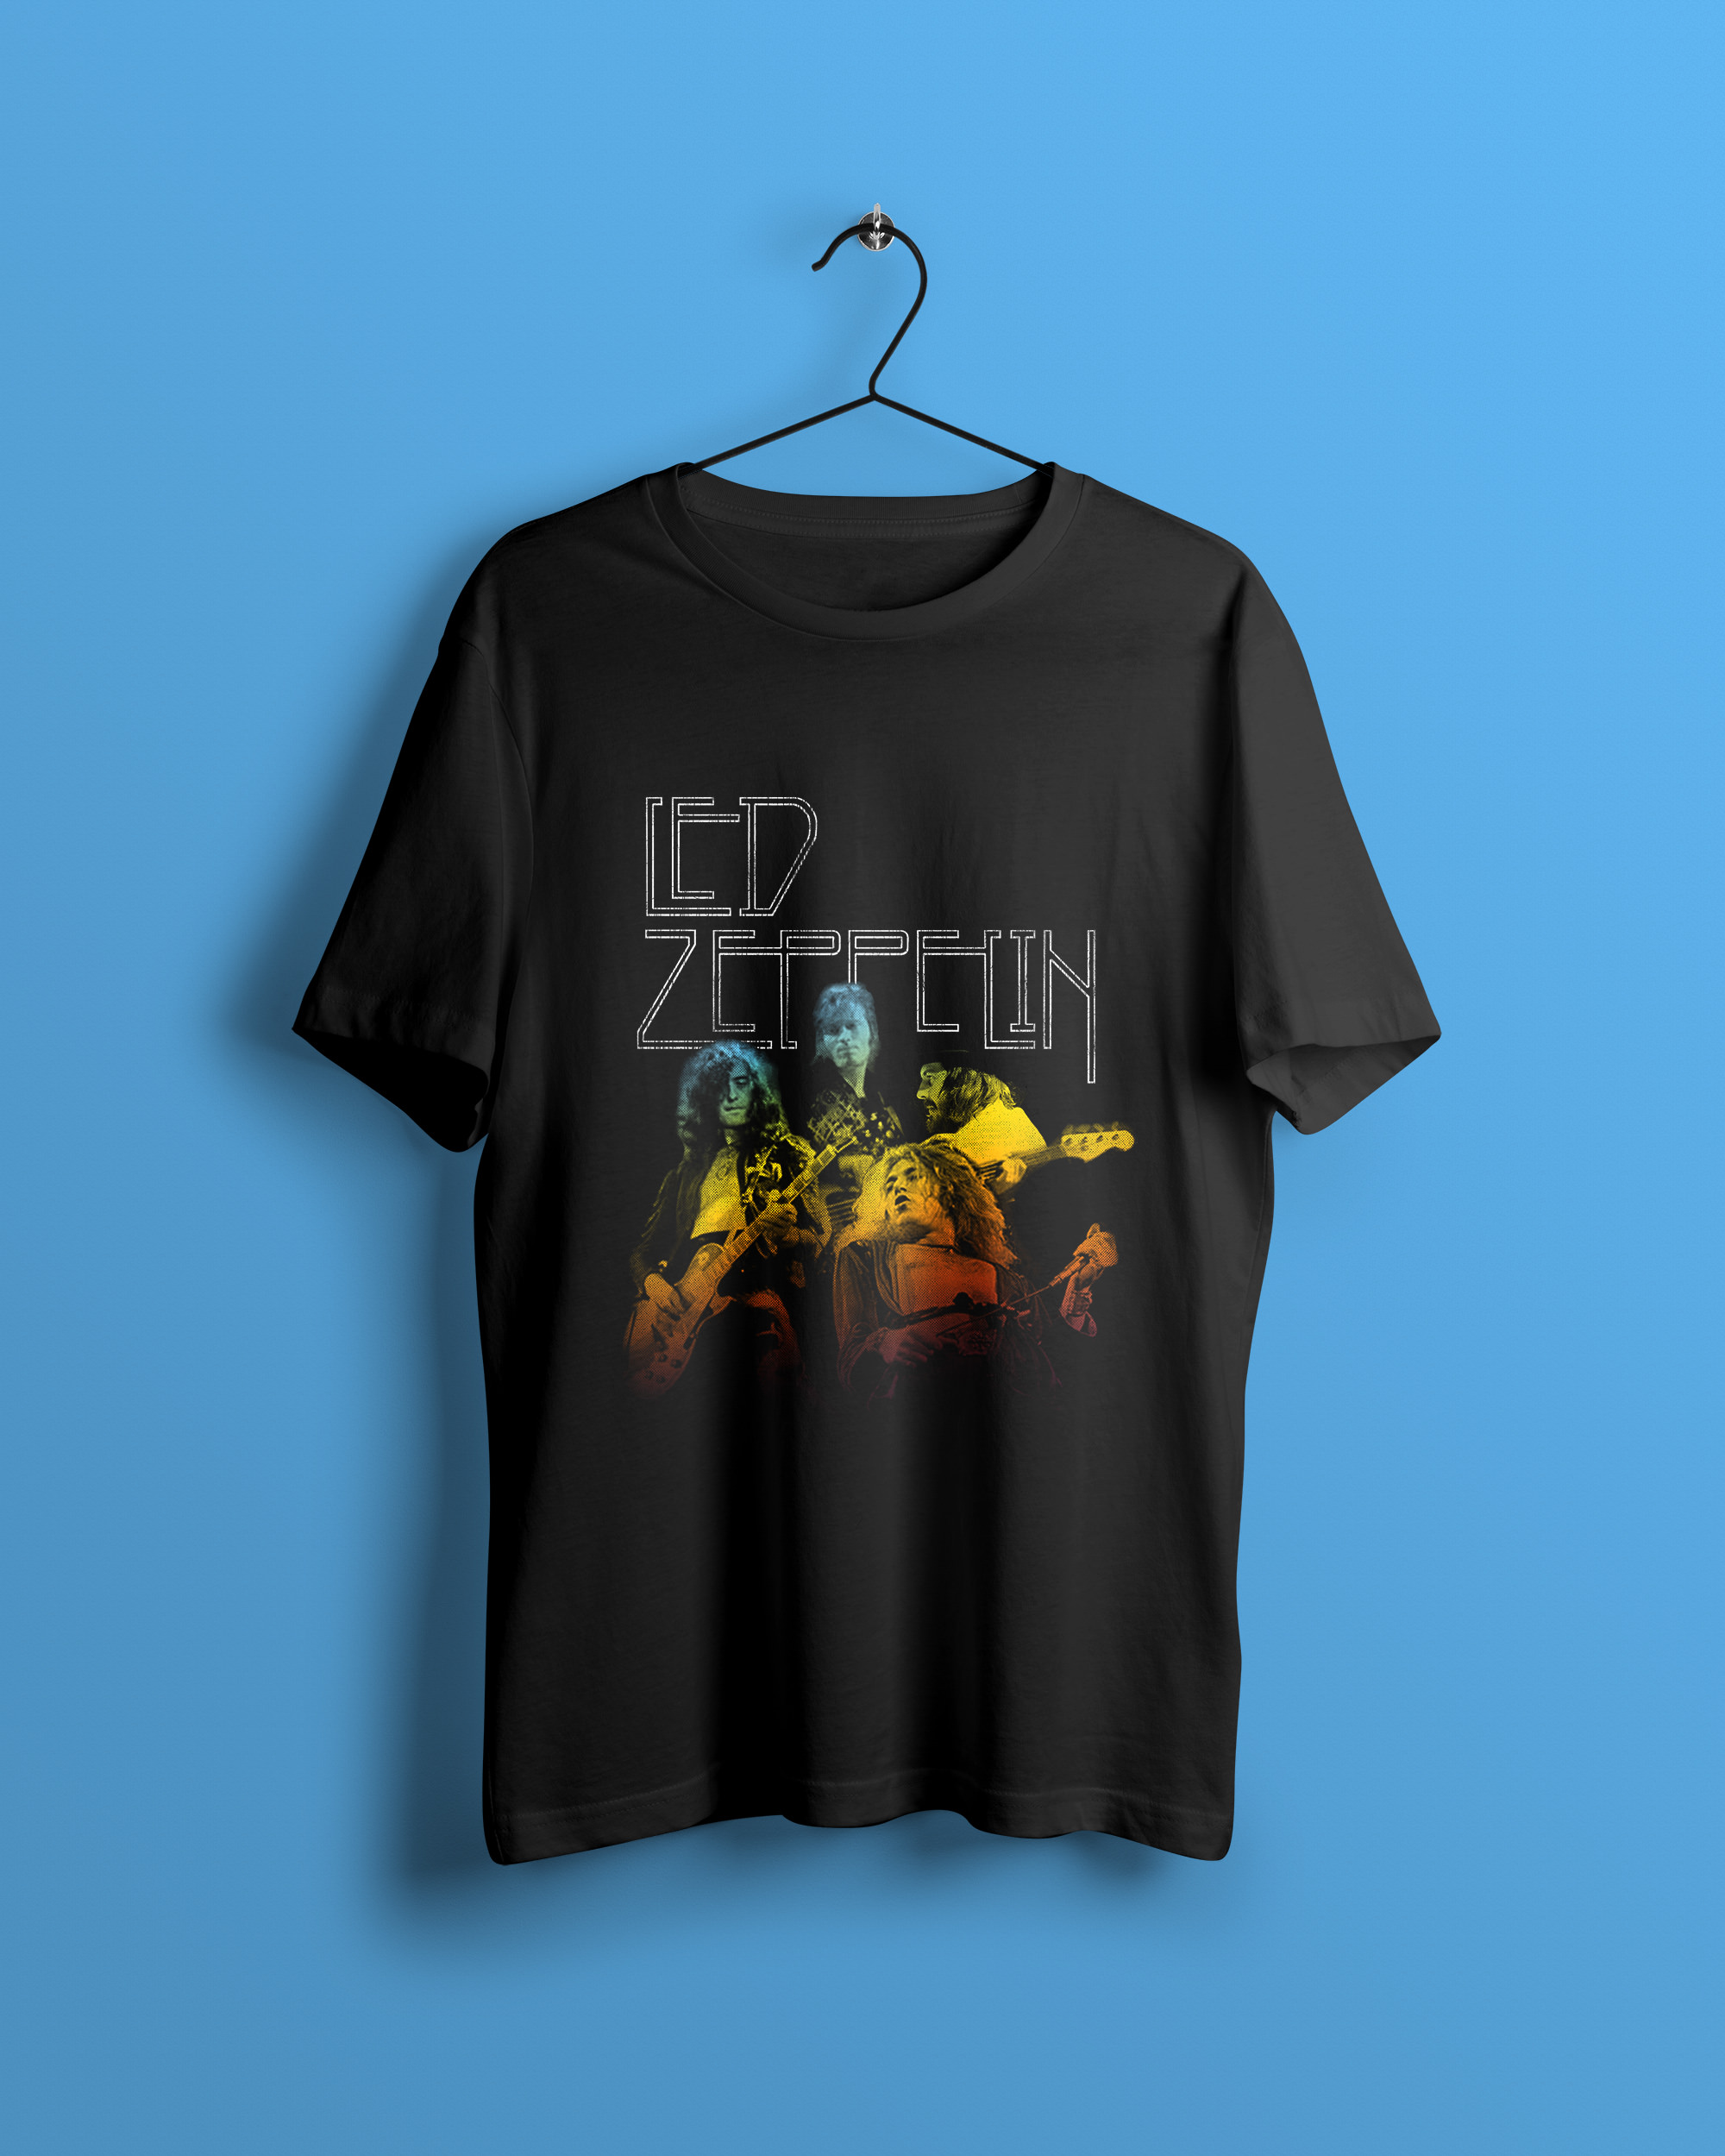 led-zeppelin-rainbow-photo-hanging.jpg